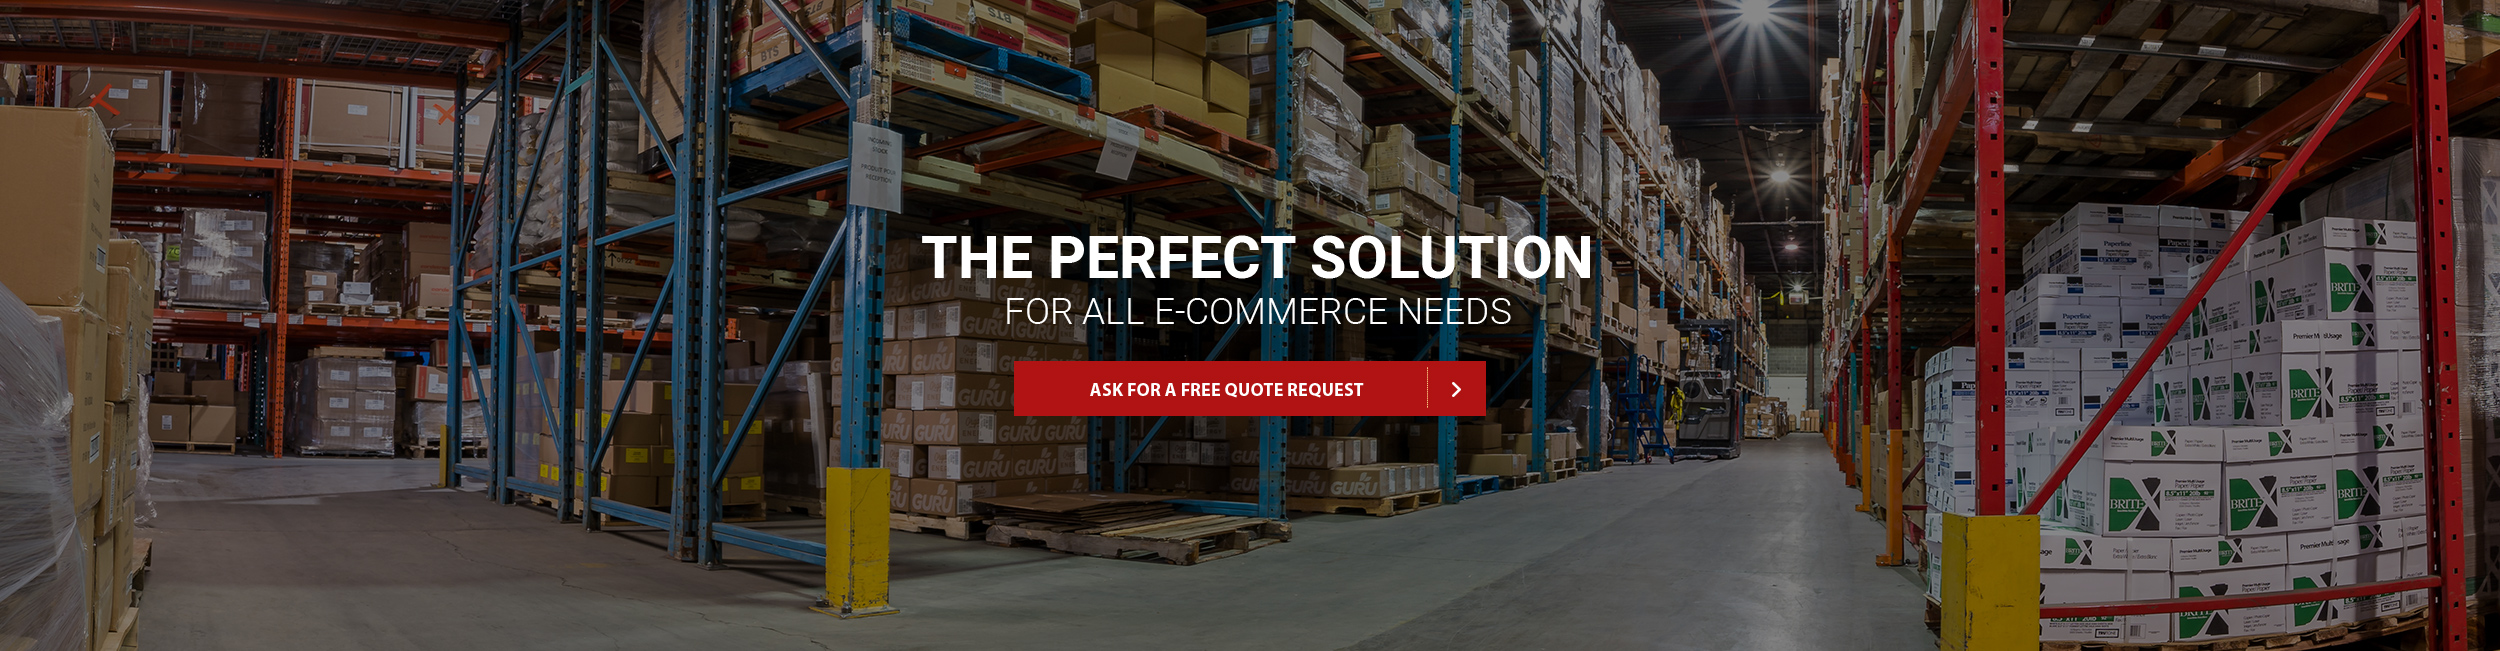 The perfect solution for all e-commerce needs